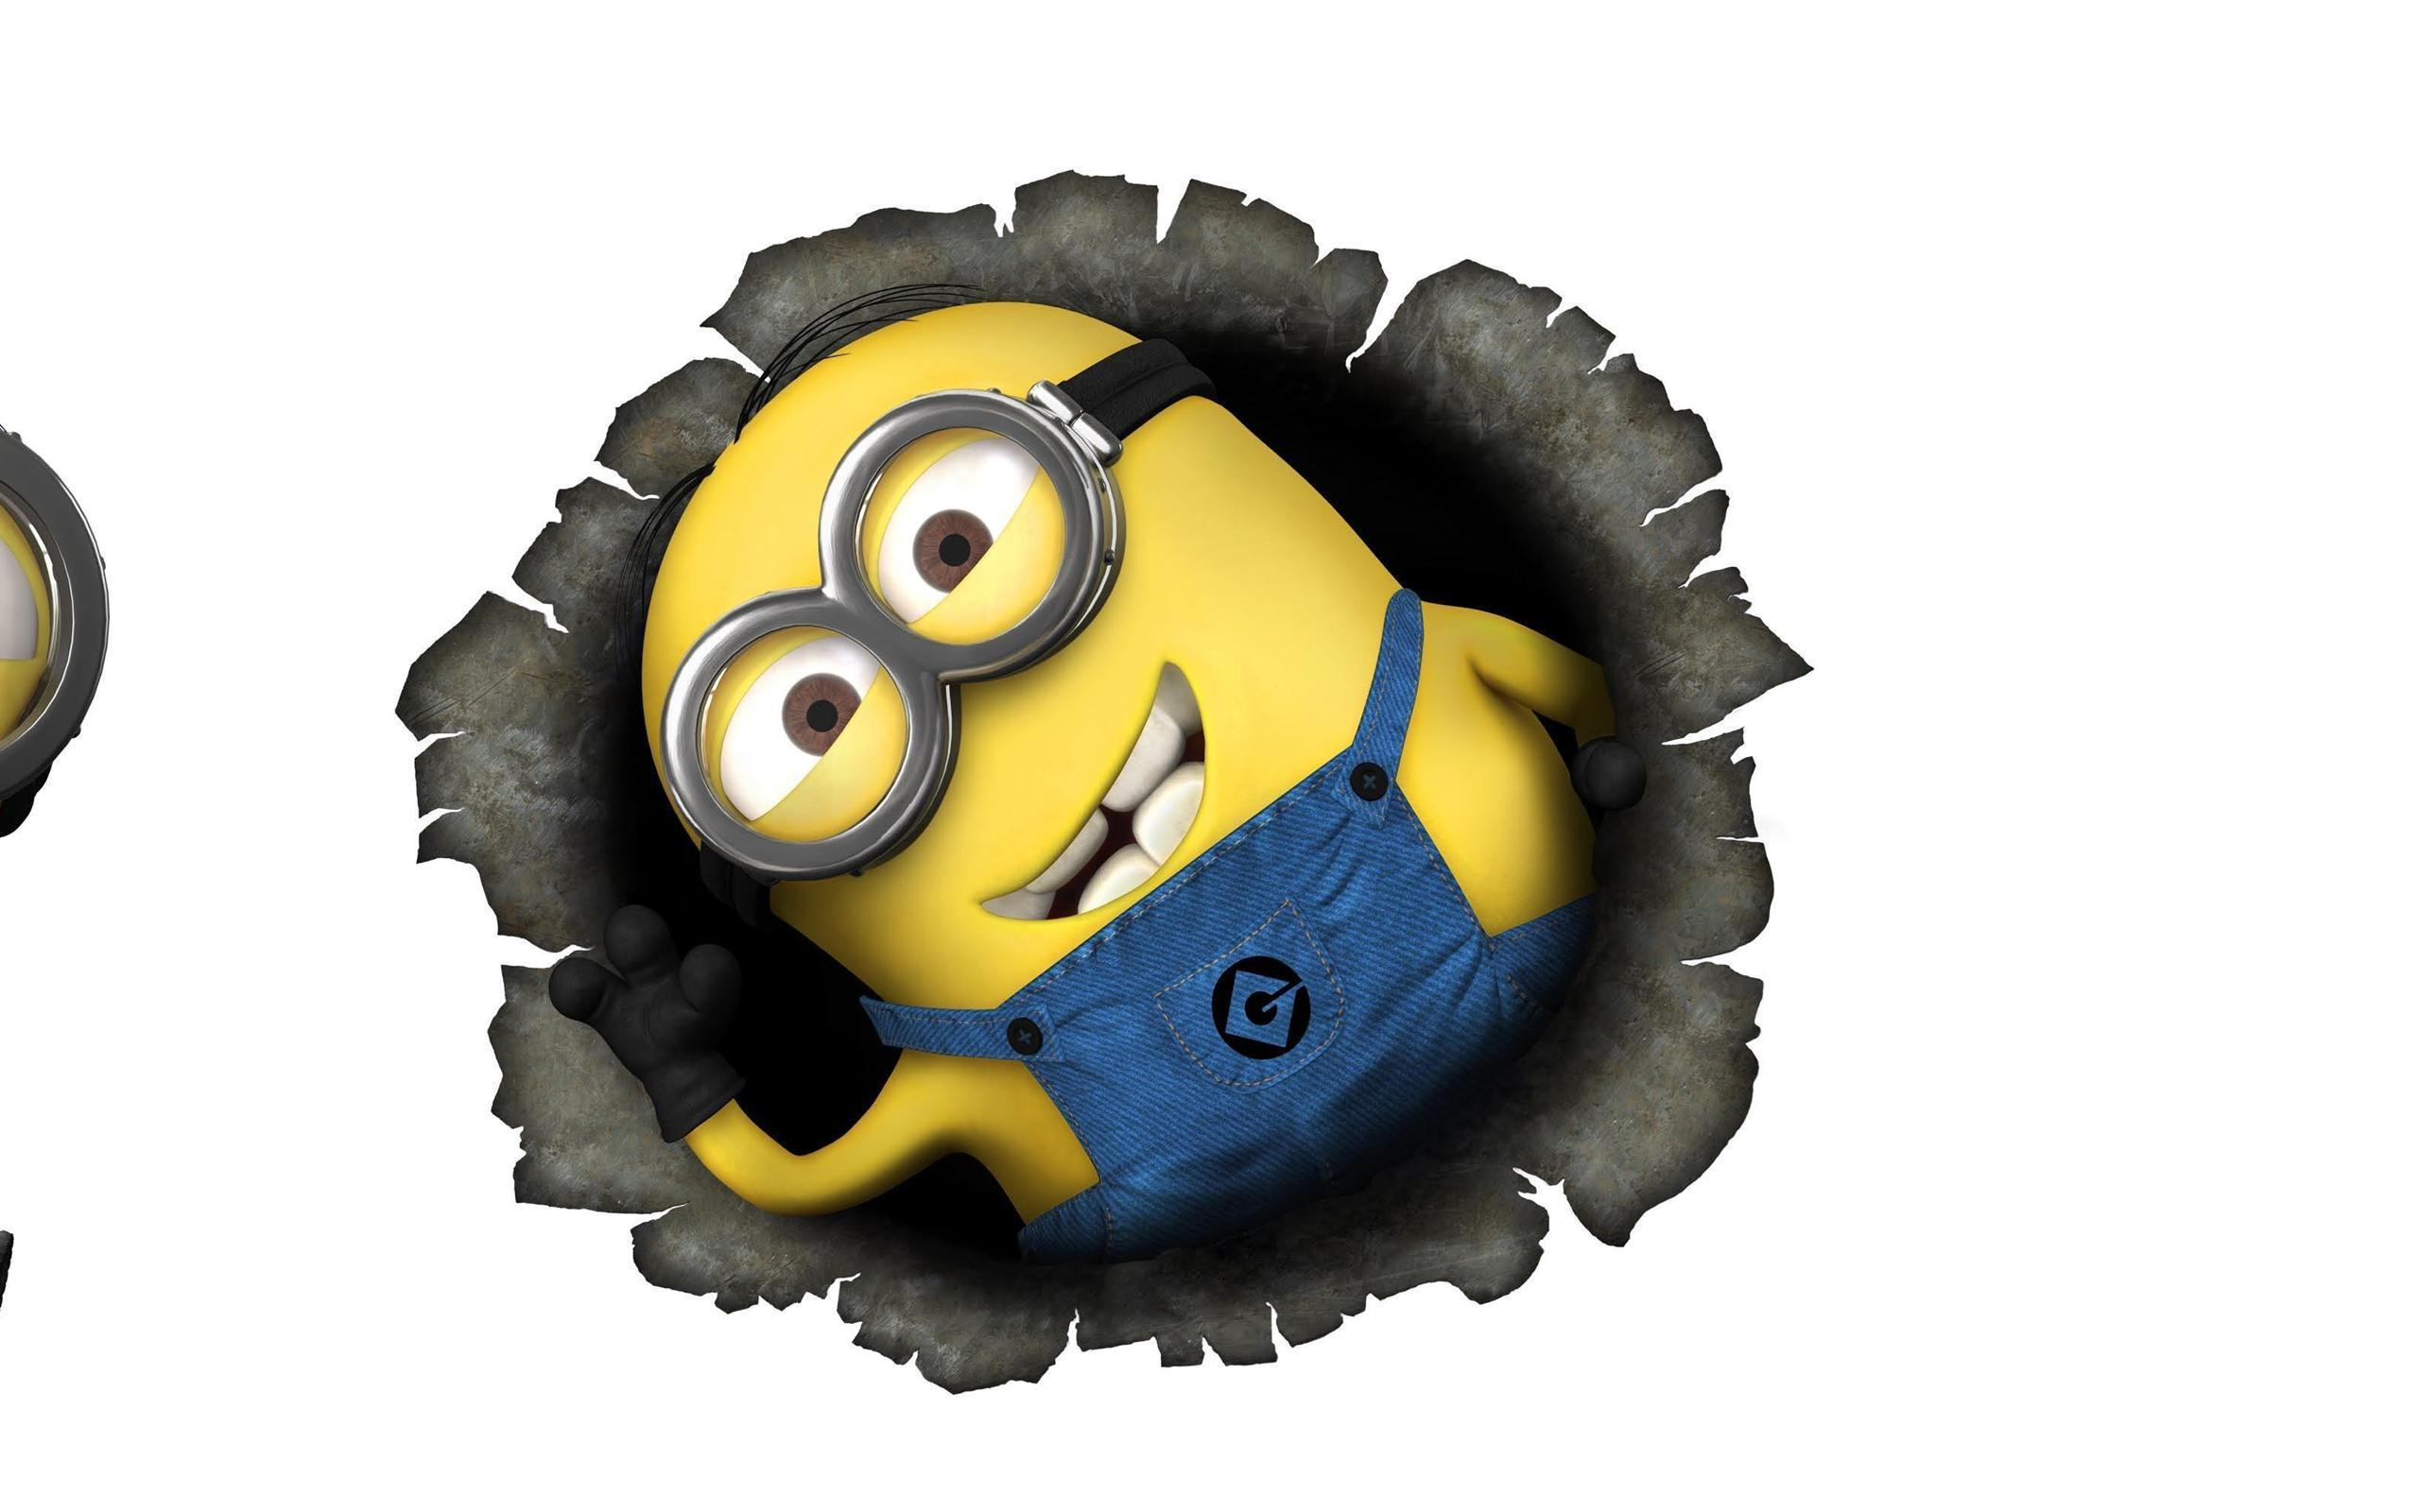 Despicable Me Minions Wallpapers For Free